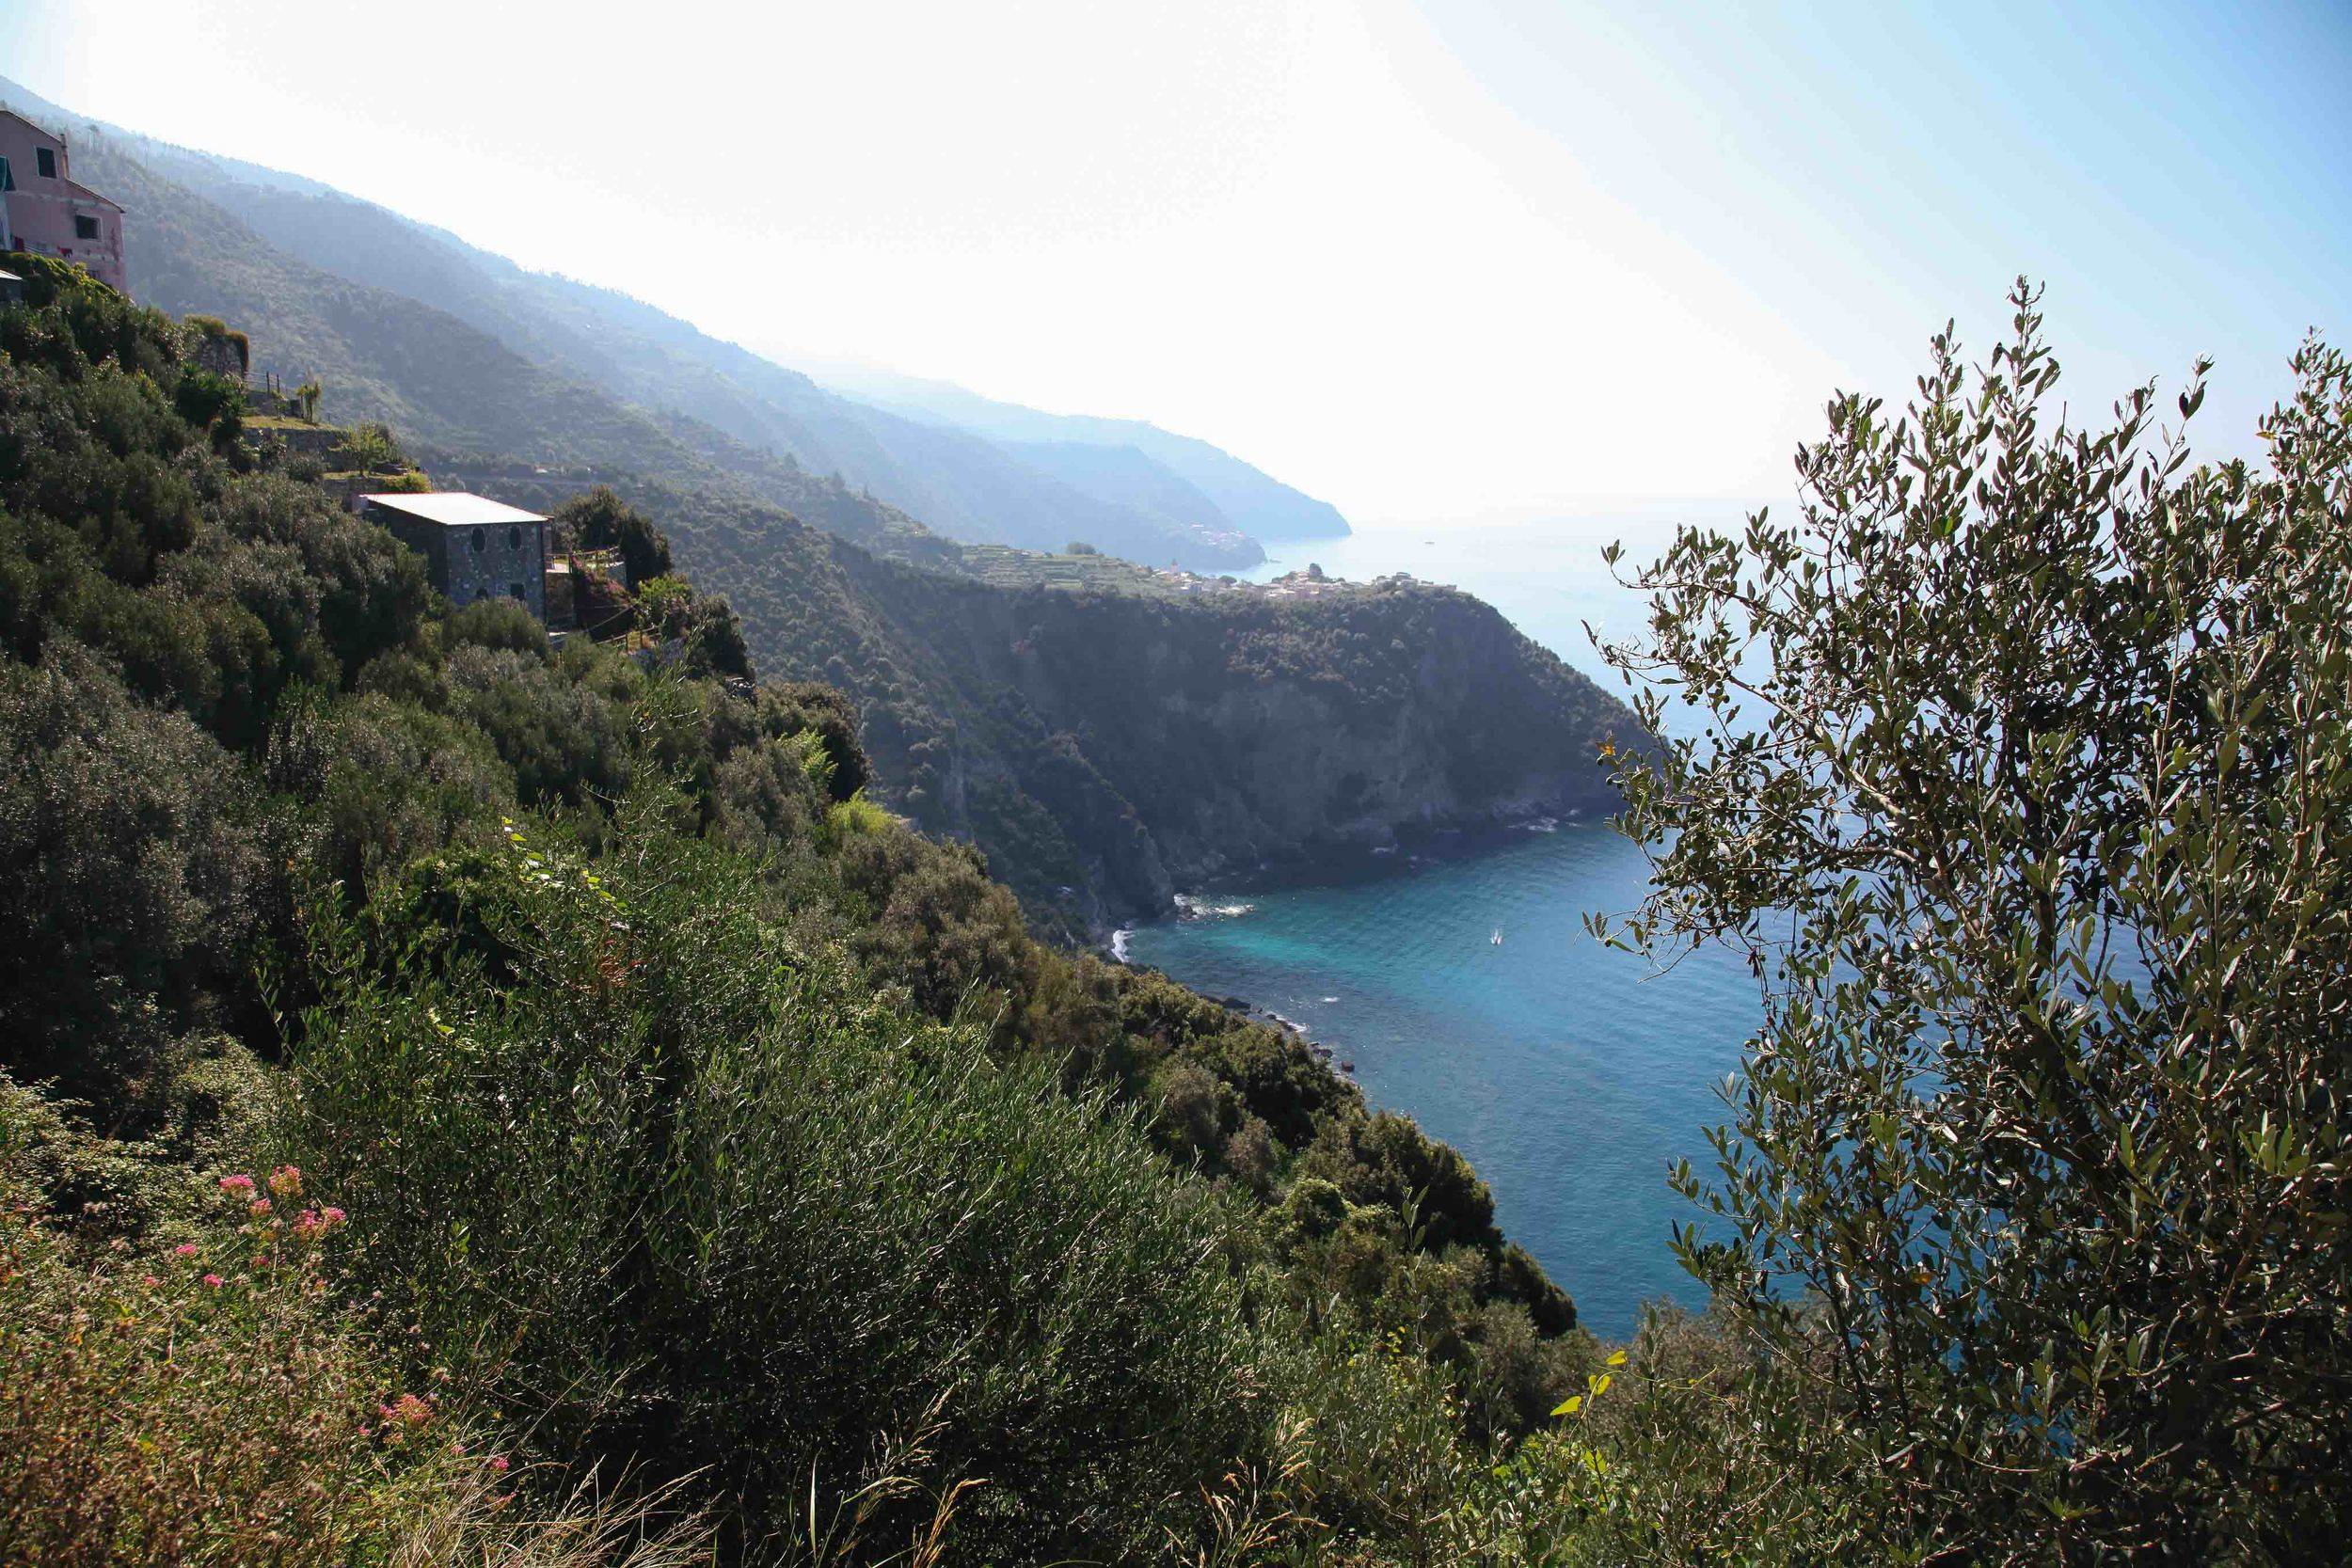 One of those times when the camera was put away on purpose. This photo was all I took when walking from Vernazza to Corniglia in the Cinque Terre.